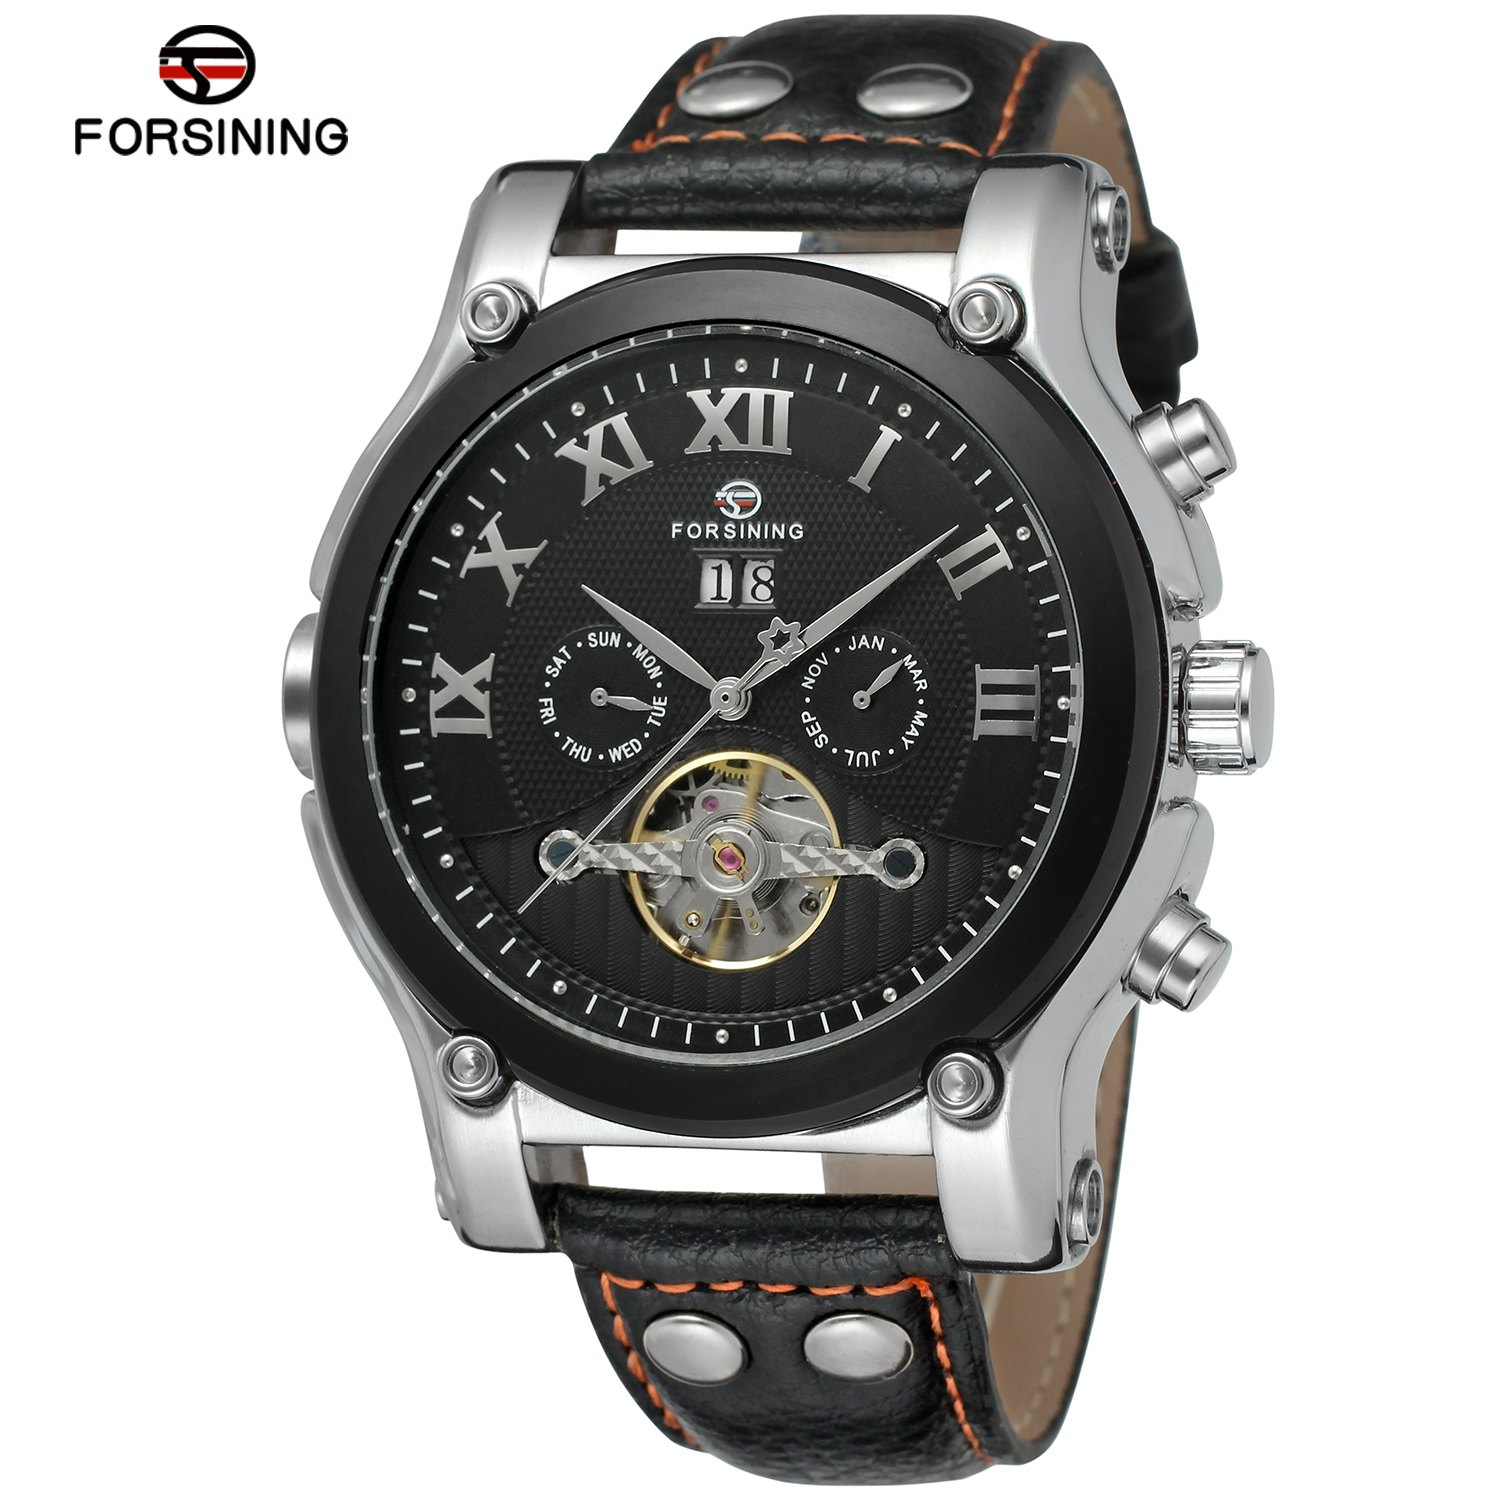 FORSINING Tourbillon Military Mechanical Watch Leather Strap Auto Date Calendar Gold Luxury Men Automatic Skeleton Wrist Watches forsining a165 men tourbillon automatic mechanical watch leather strap date week month year display